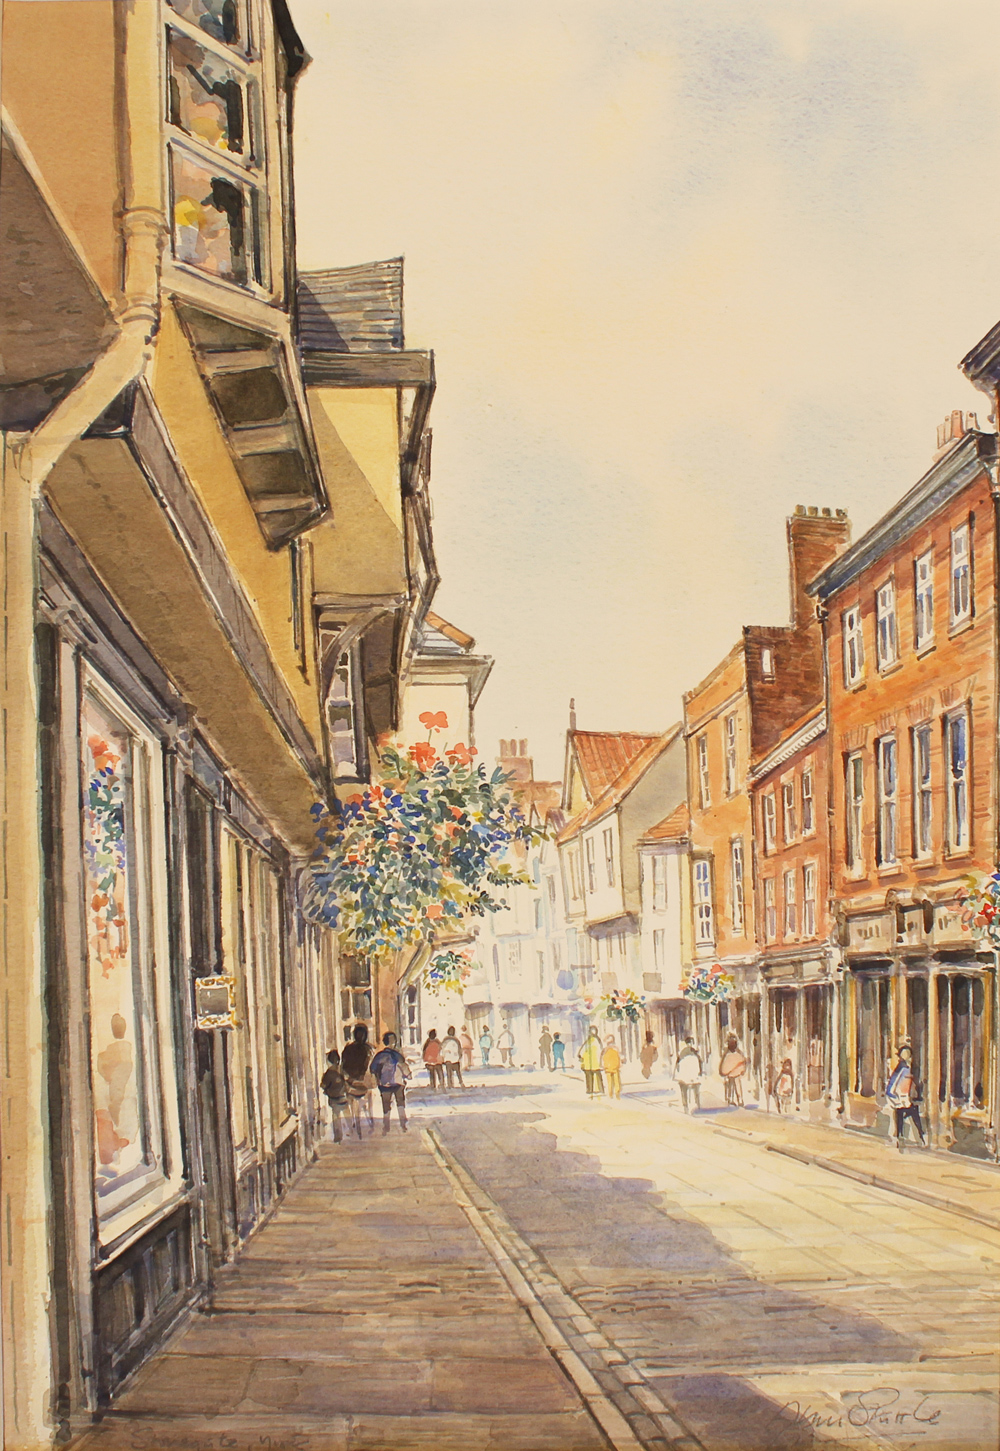 Alan Stuttle, Watercolour, Stonegate, York, click to enlarge